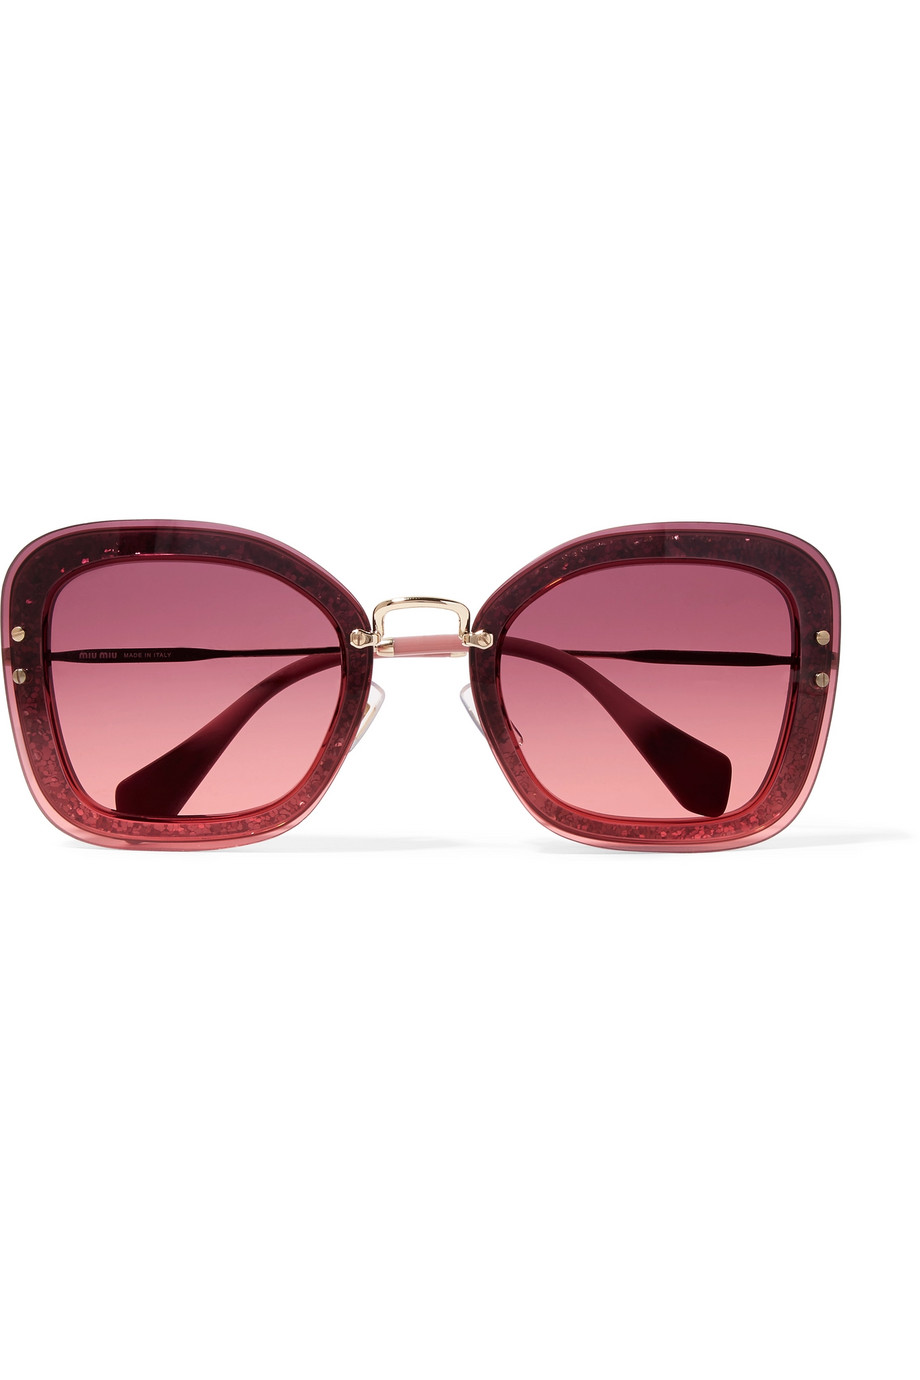 383bdc05017c Miu Miu · Miu Miu | Square-frame glittered acetate and gold-tone sunglasses  ...